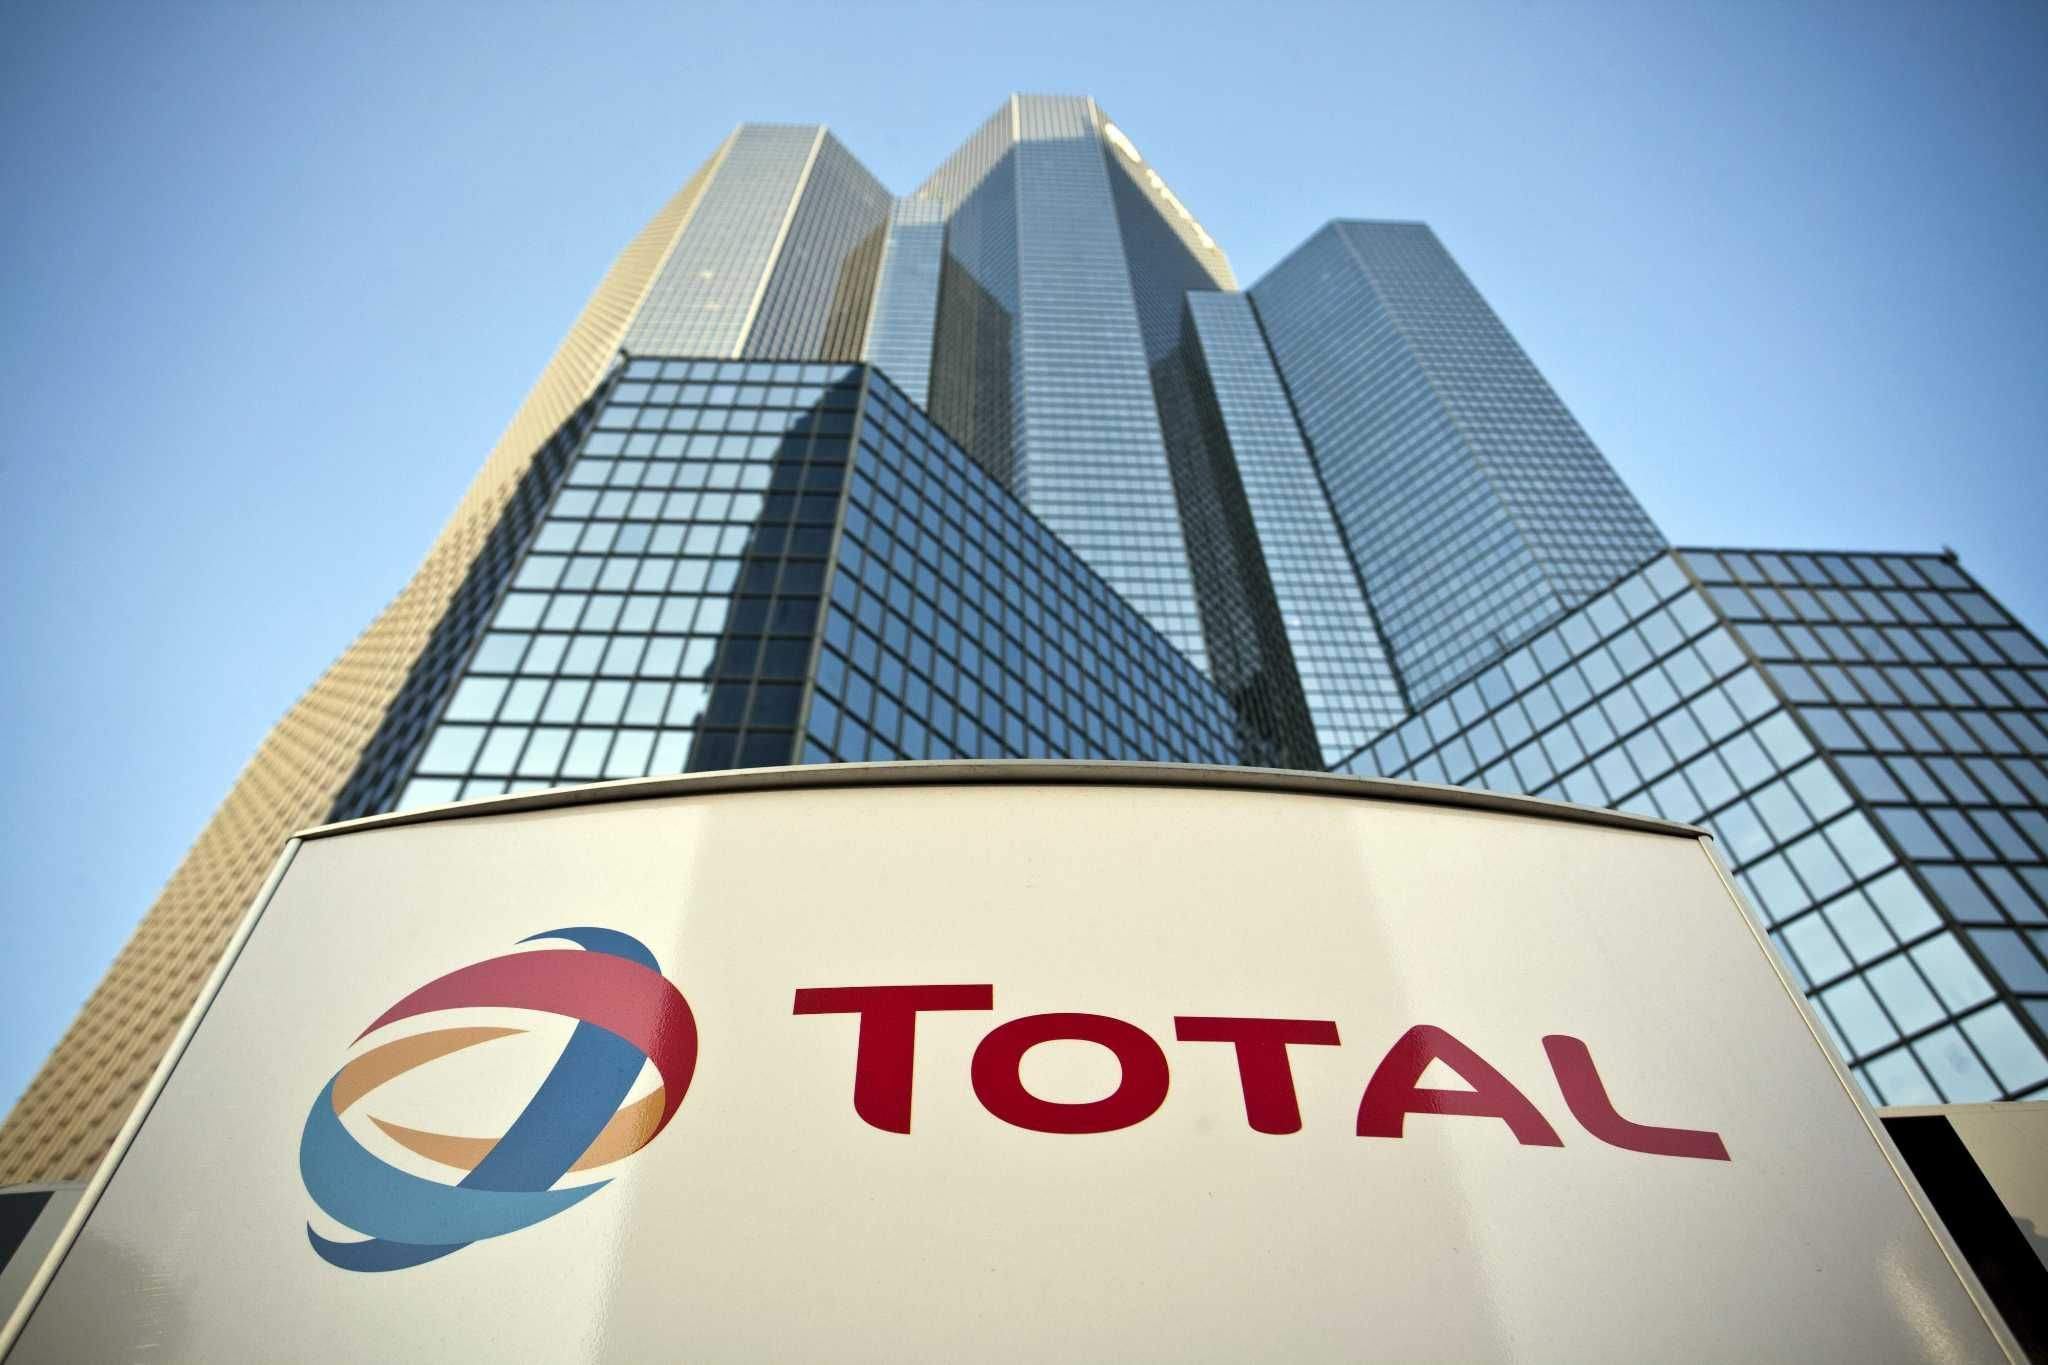 France S Total Boosts Cypriot Gas Plan As It Eyes Iran Exit Avec Images